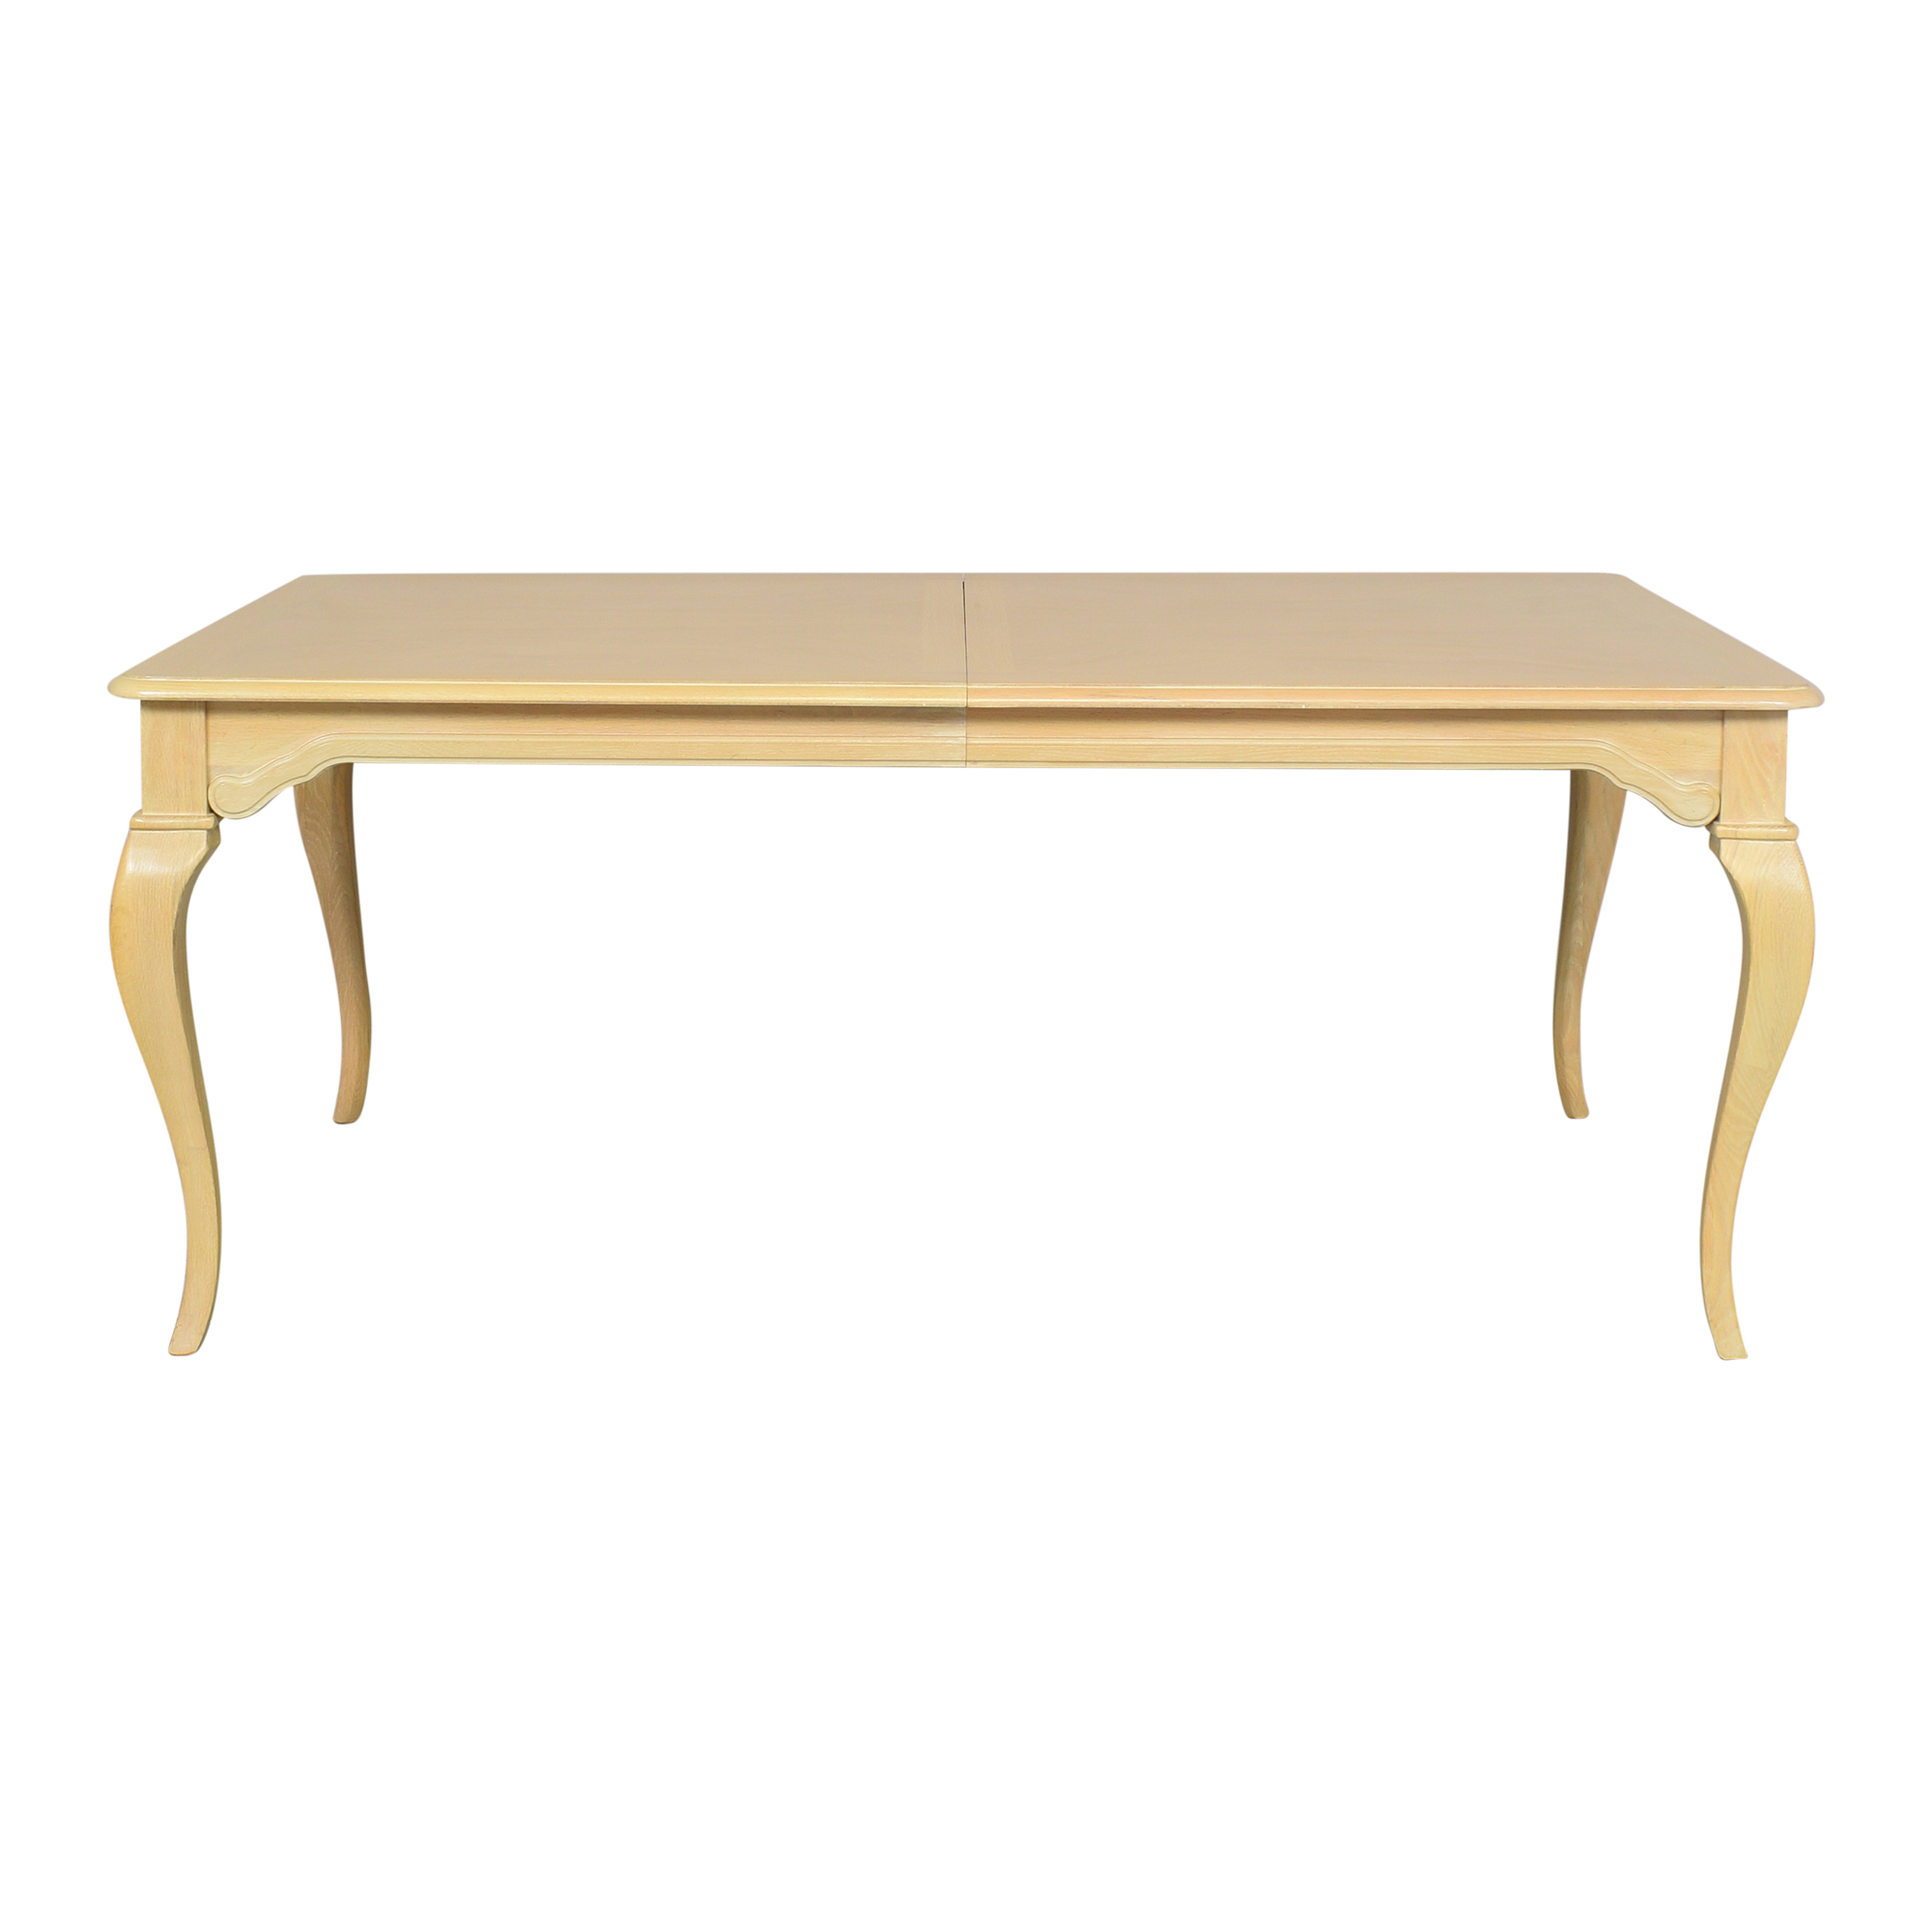 Thomasville Thomasville Queen Anne Extendable Dining Table on sale